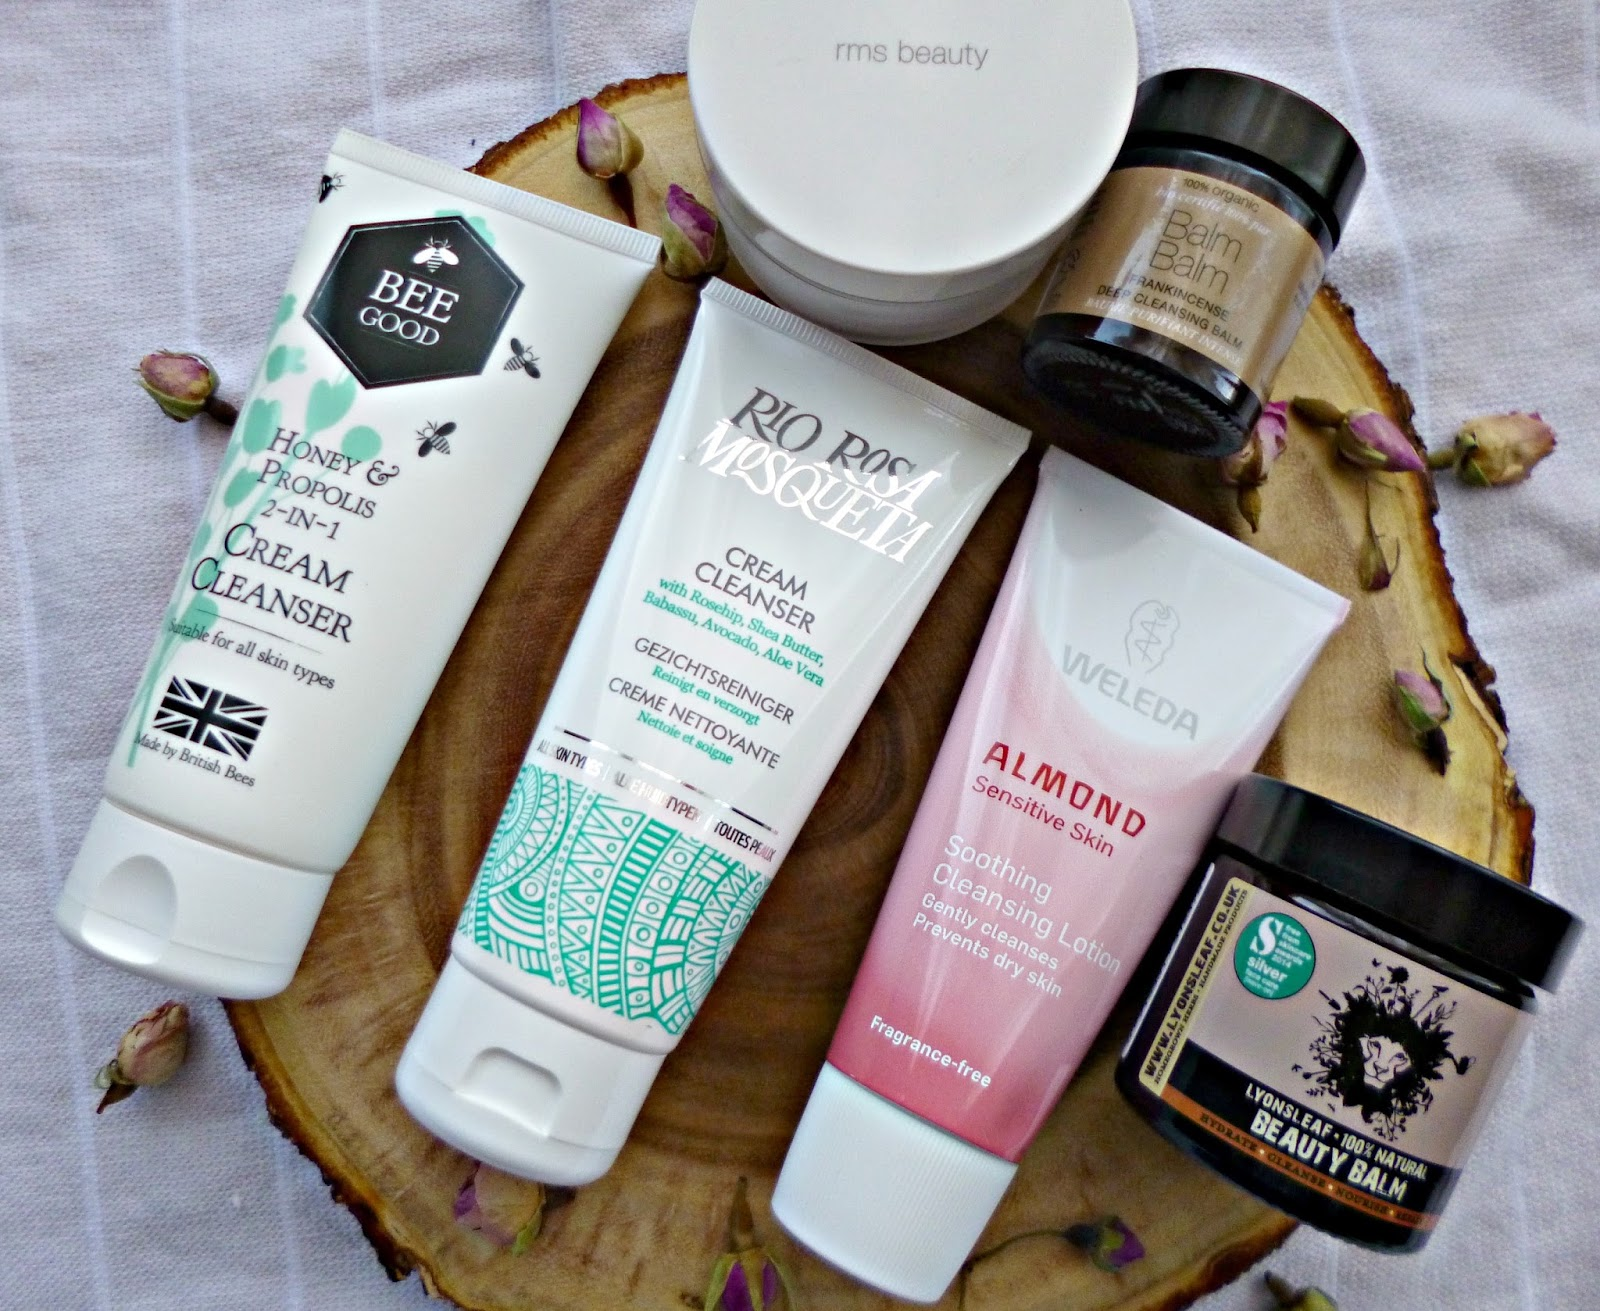 Best natural and organic cleansers on a budget – £15 and under